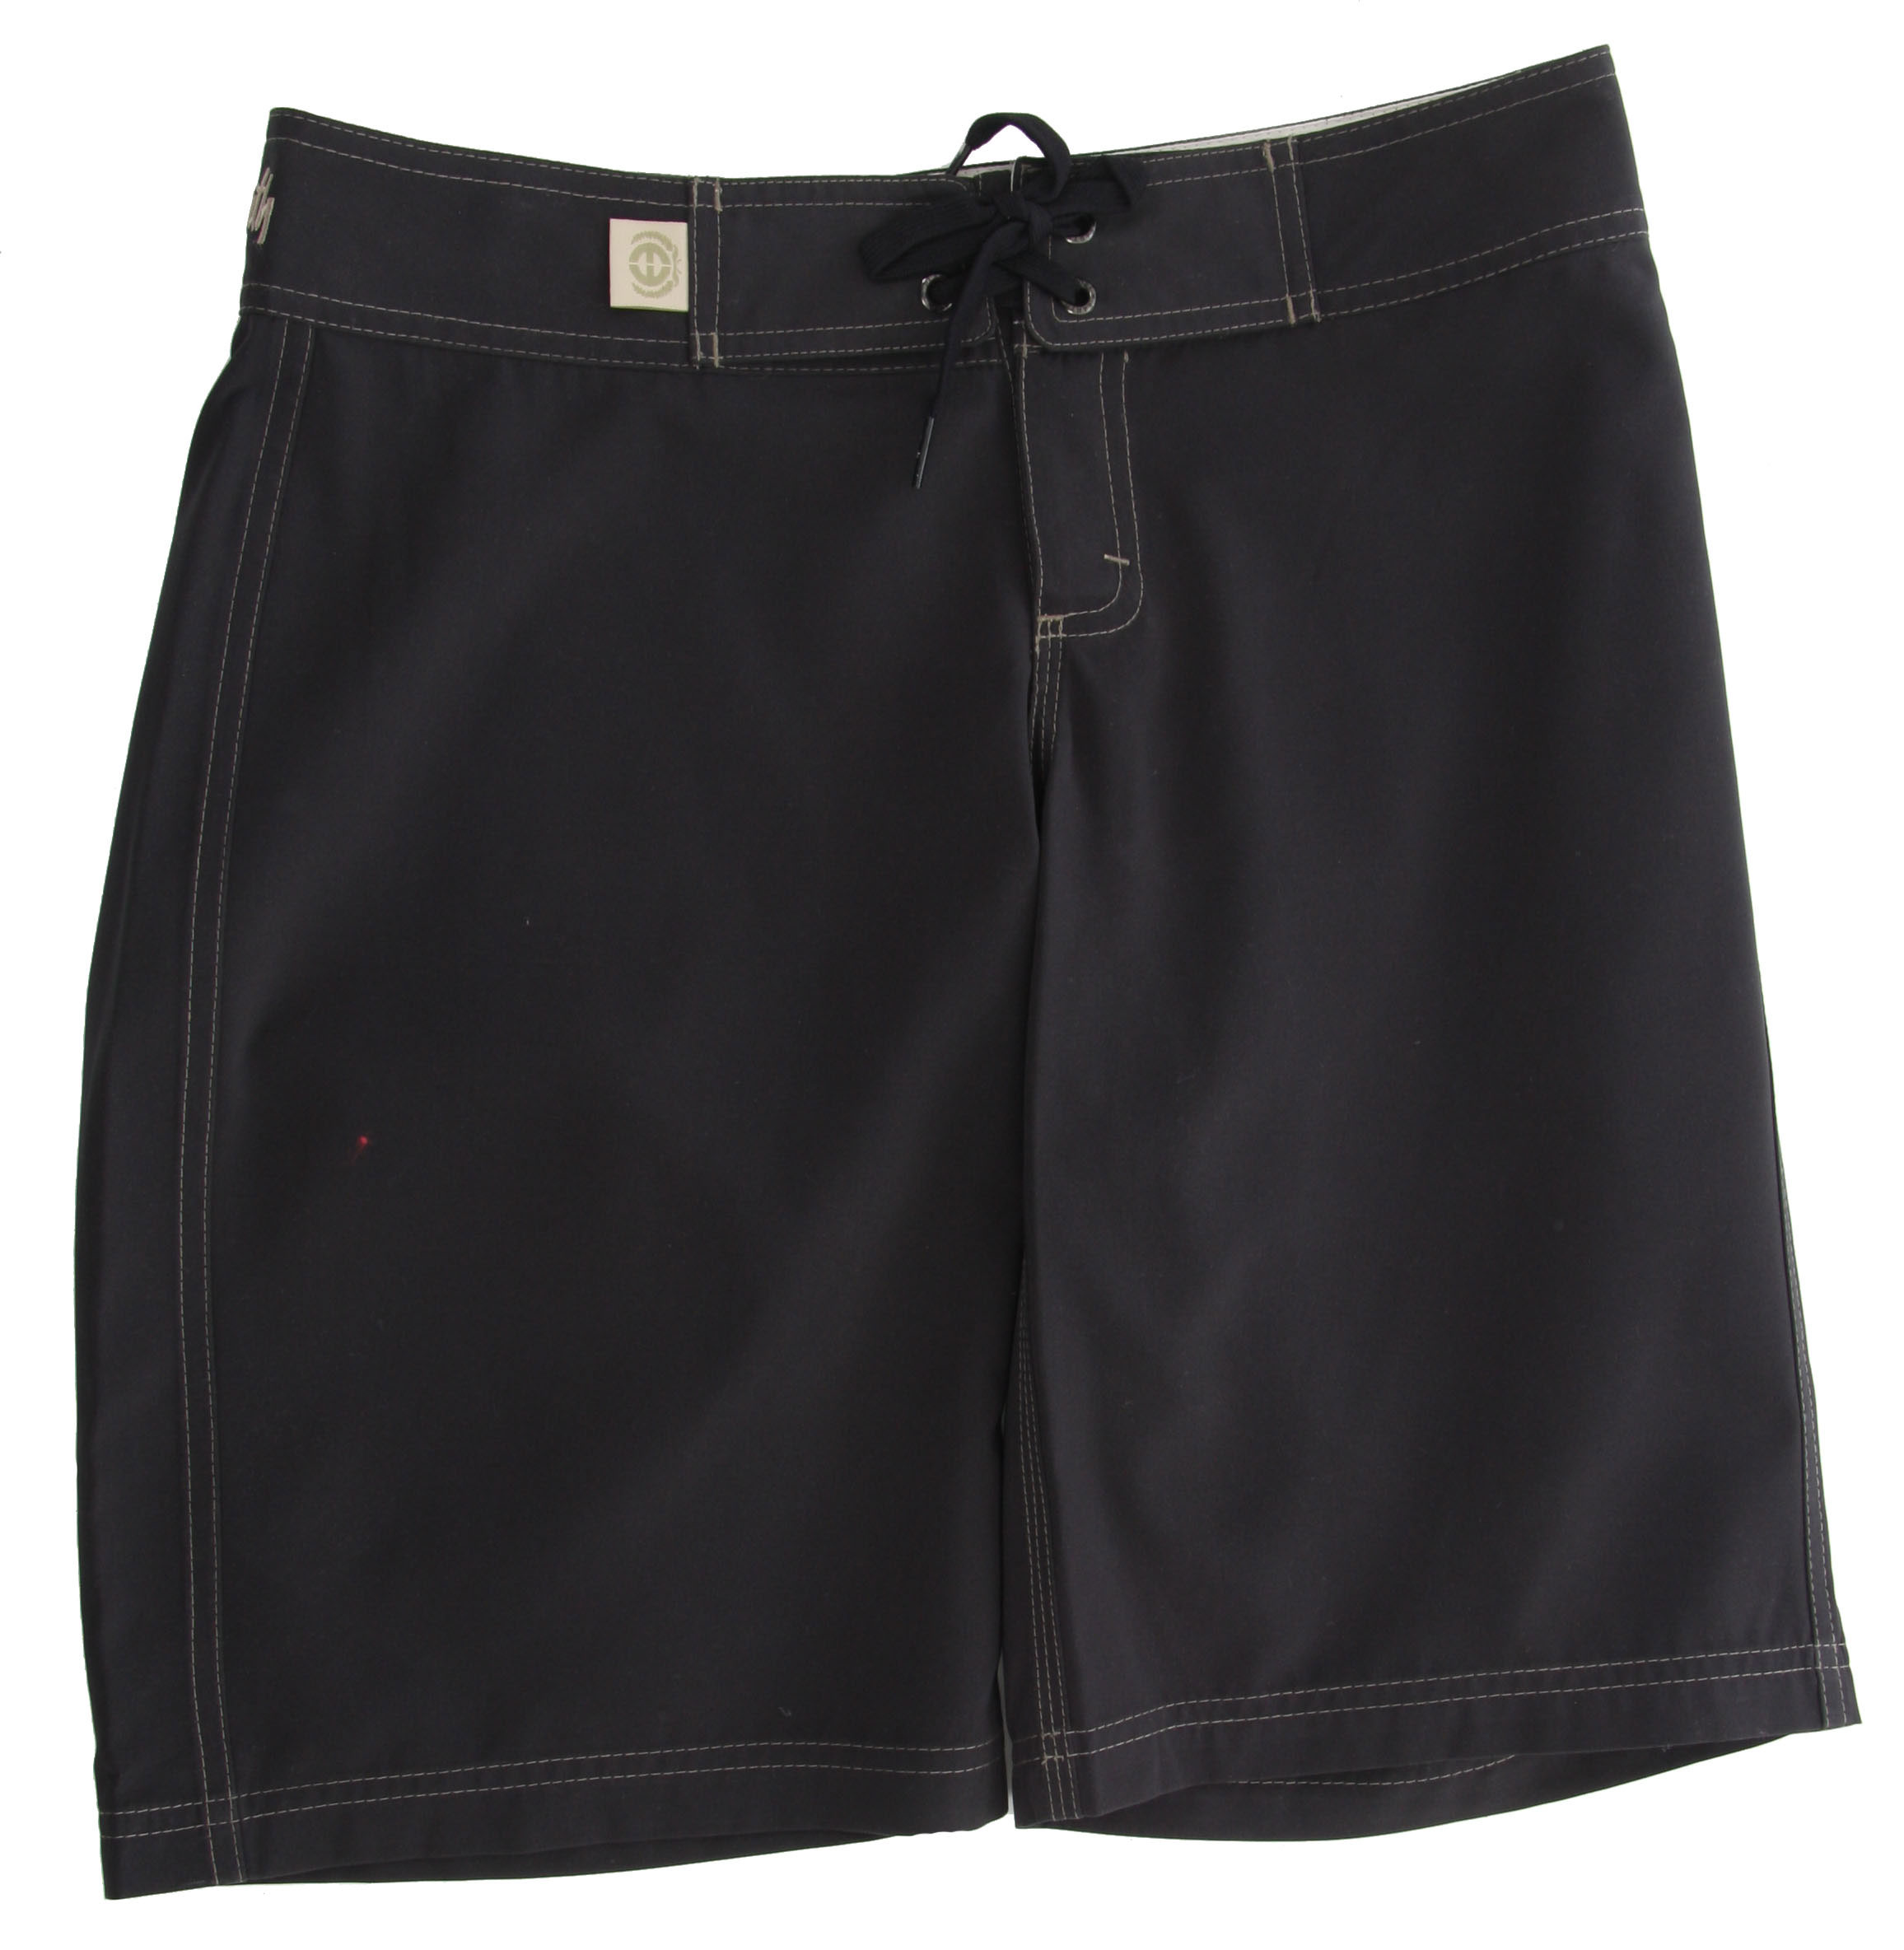 Surf Planet Earth Wilkinson Boardshorts Cave Black - $16.70